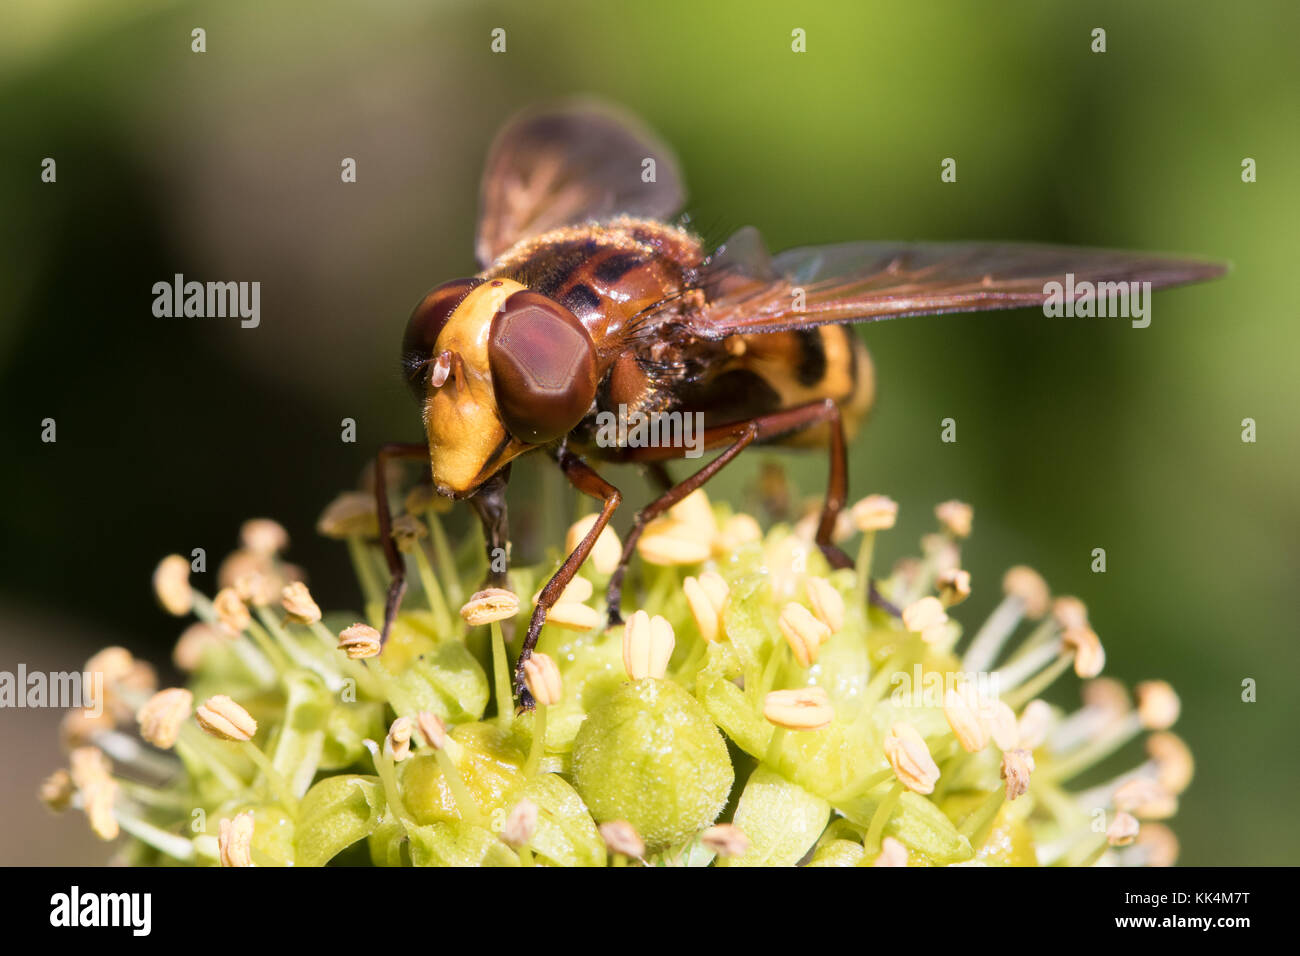 Volucella zonaria (a hoverfly hornet-mimic) feeding on Ivy (Hedera helix) flowers - Stock Image